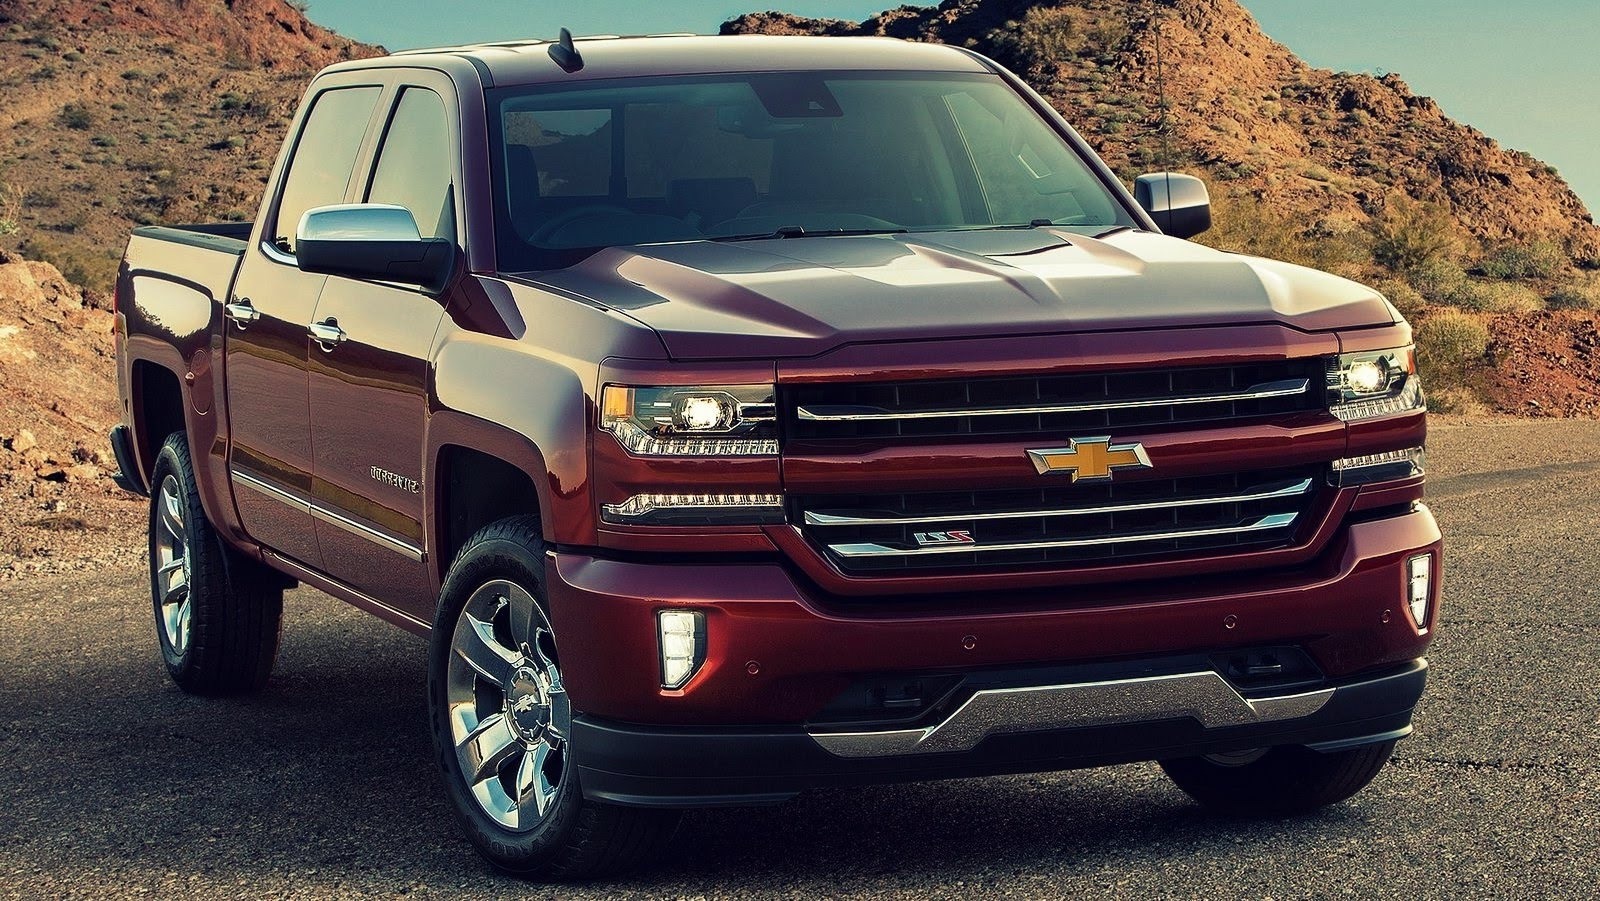 Chevy Avalanche 2016 >> Team Chevy Rodeo Highlights the New 2016 Chevy Silverado | 2016 Chevy Silverado